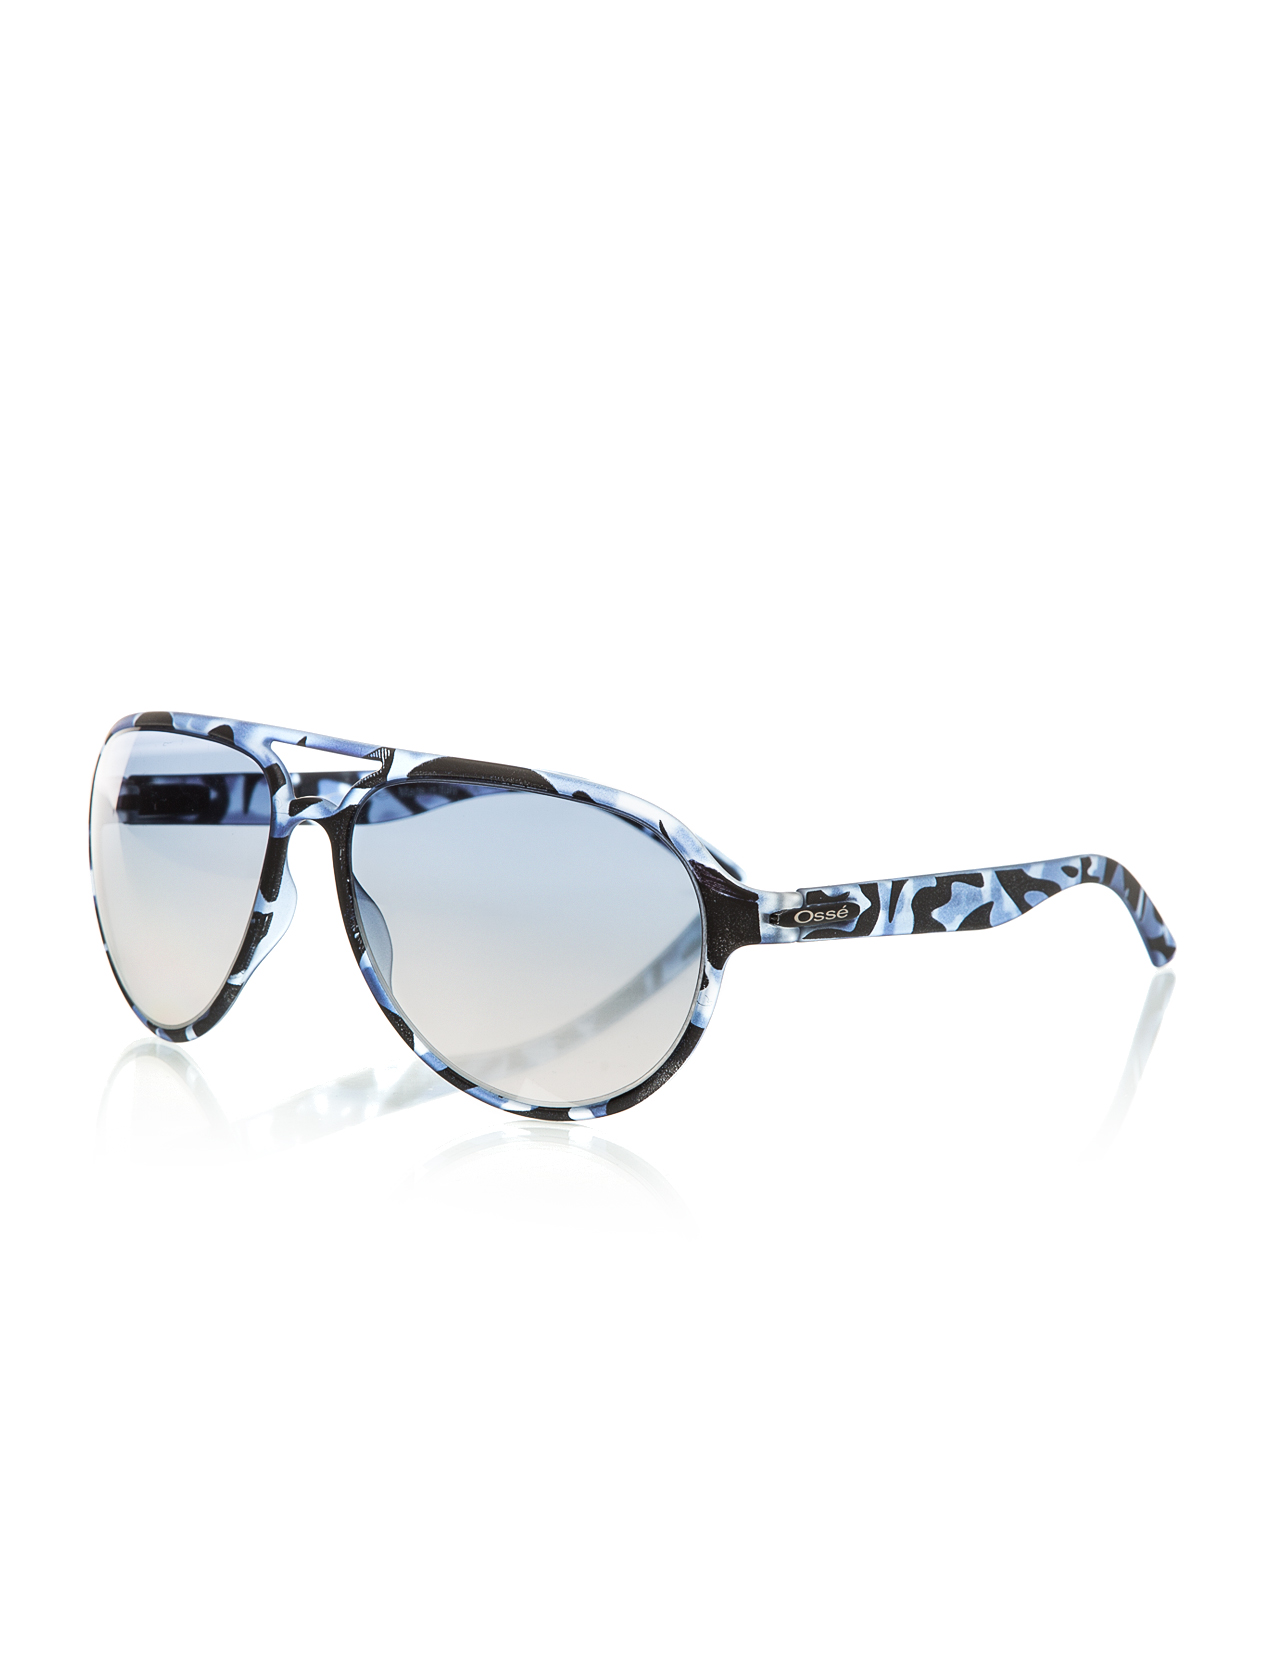 Men's sunglasses os 2049 06 bone blue organic drop pilot 60-21-135 osse